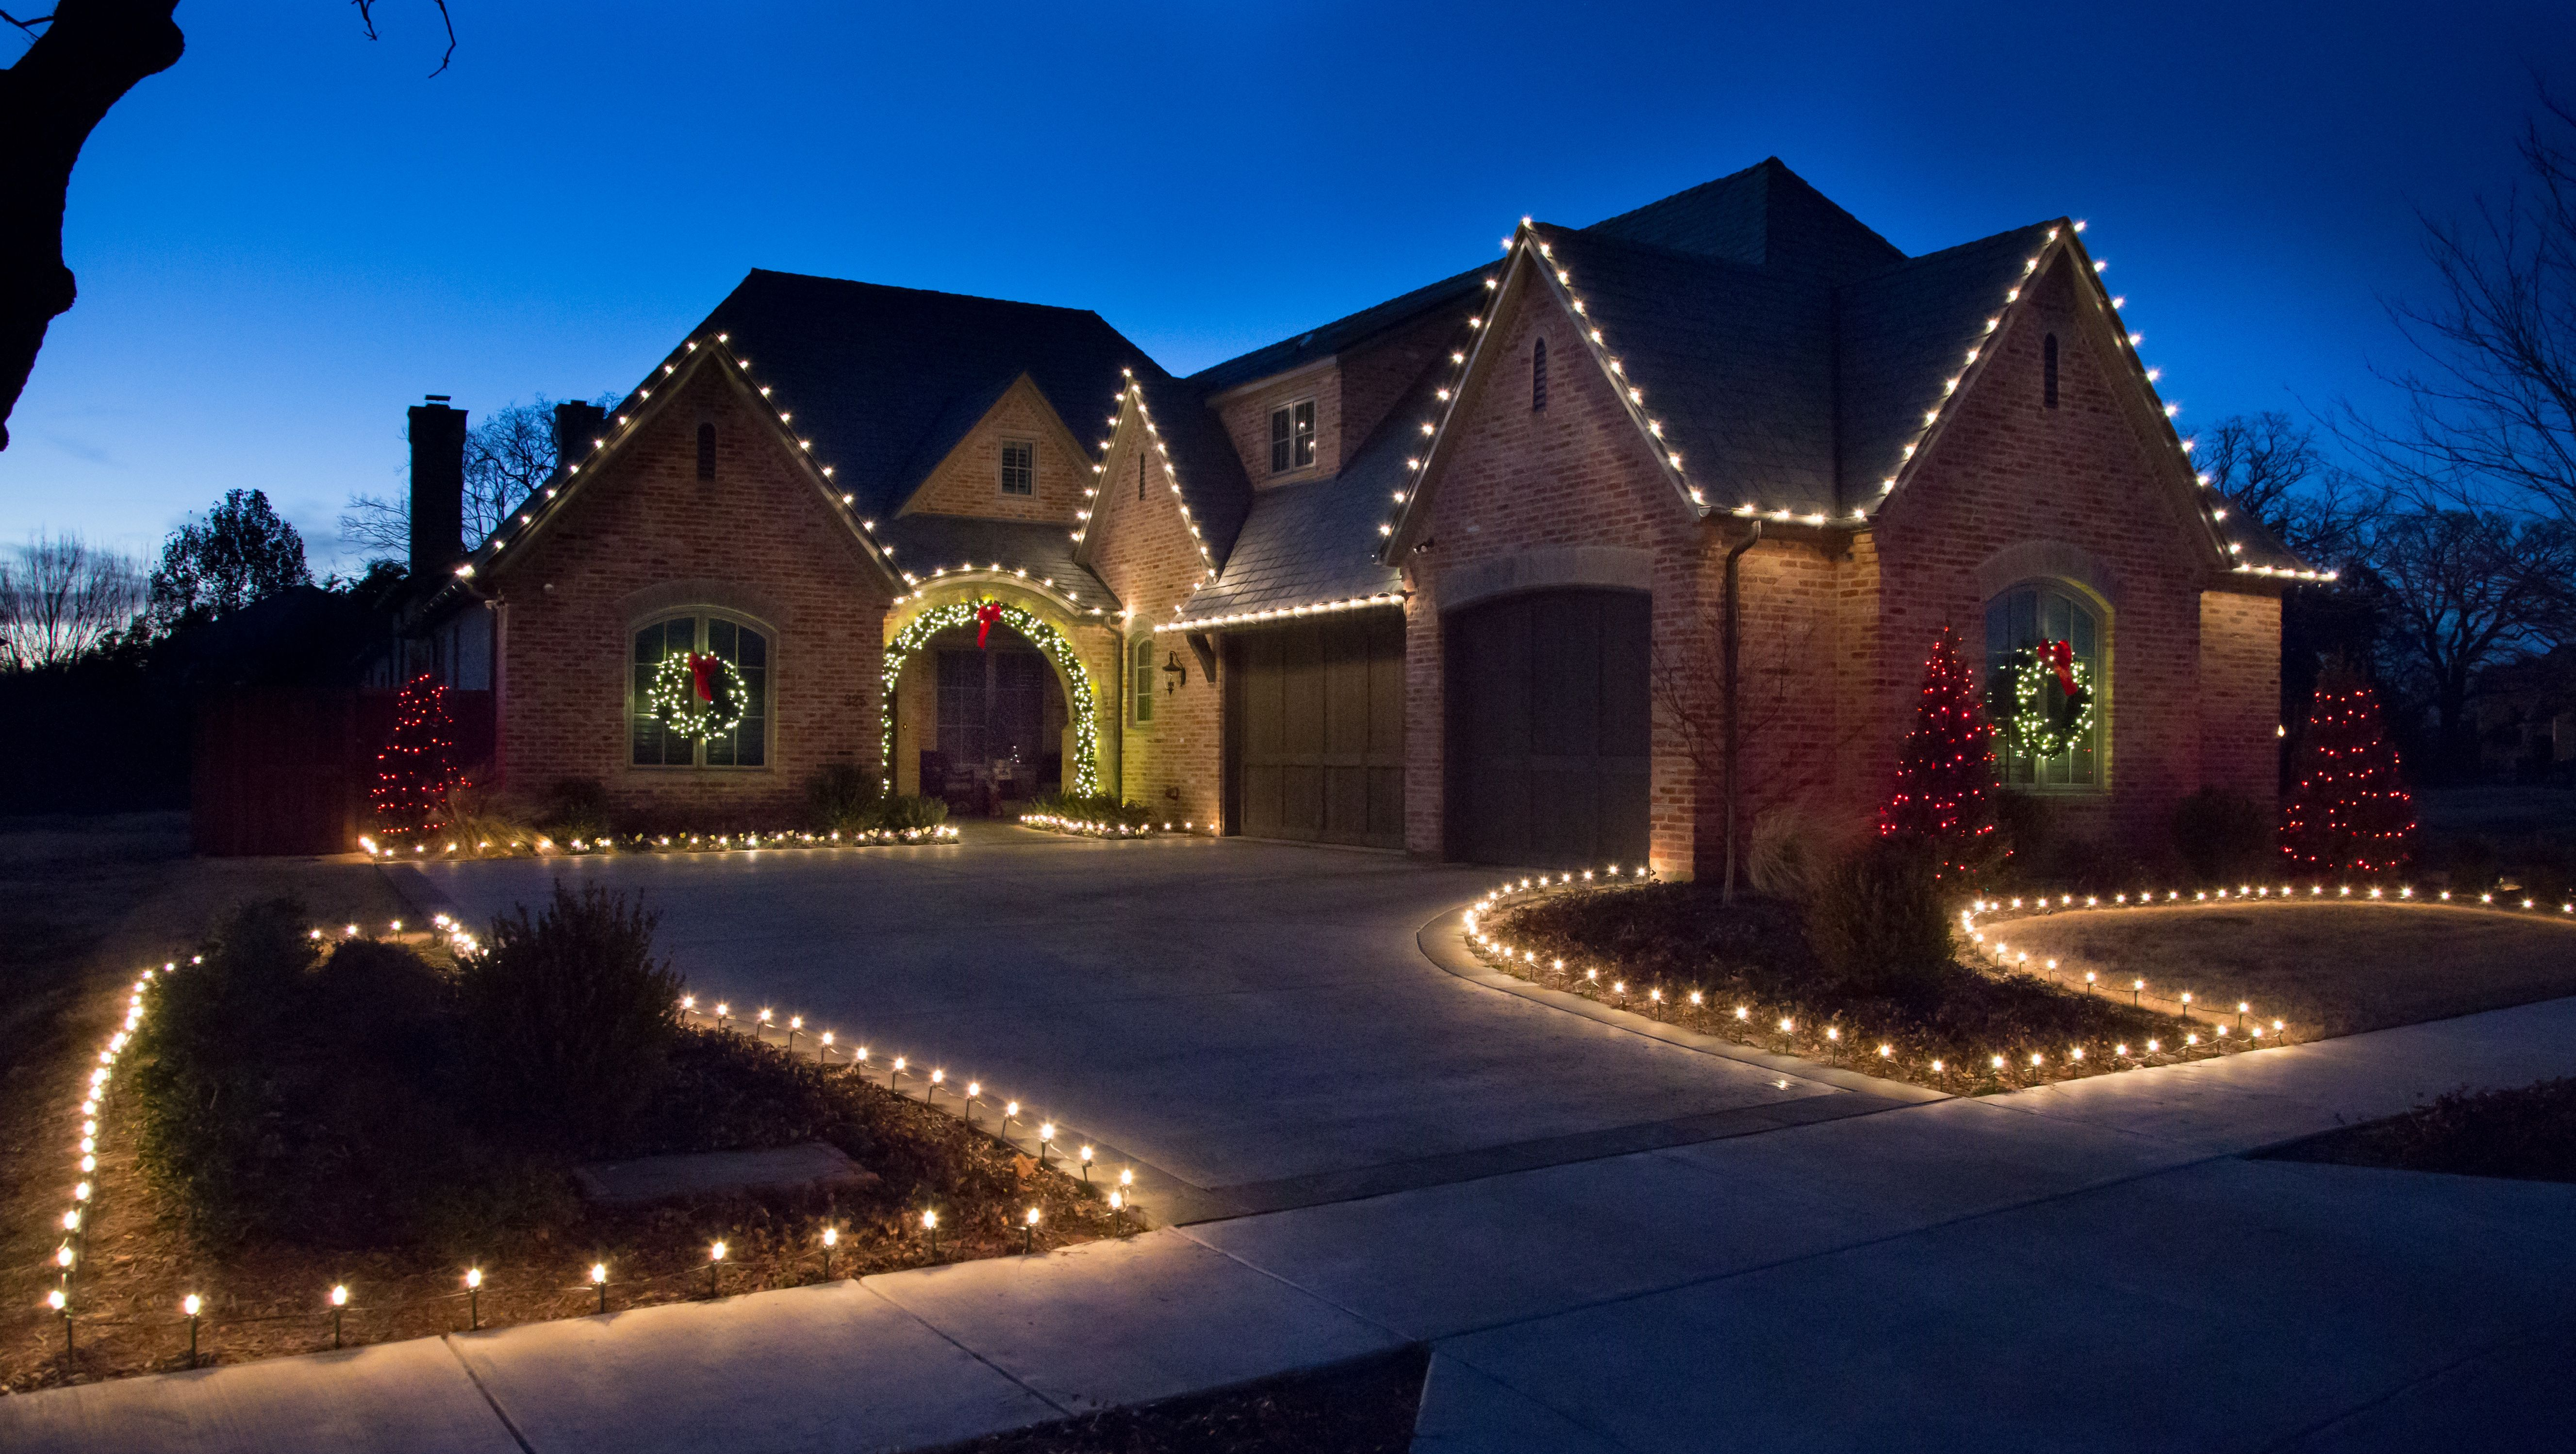 Christmas Lighting Install in Dallas - The Perfect Light Dallas - 2014